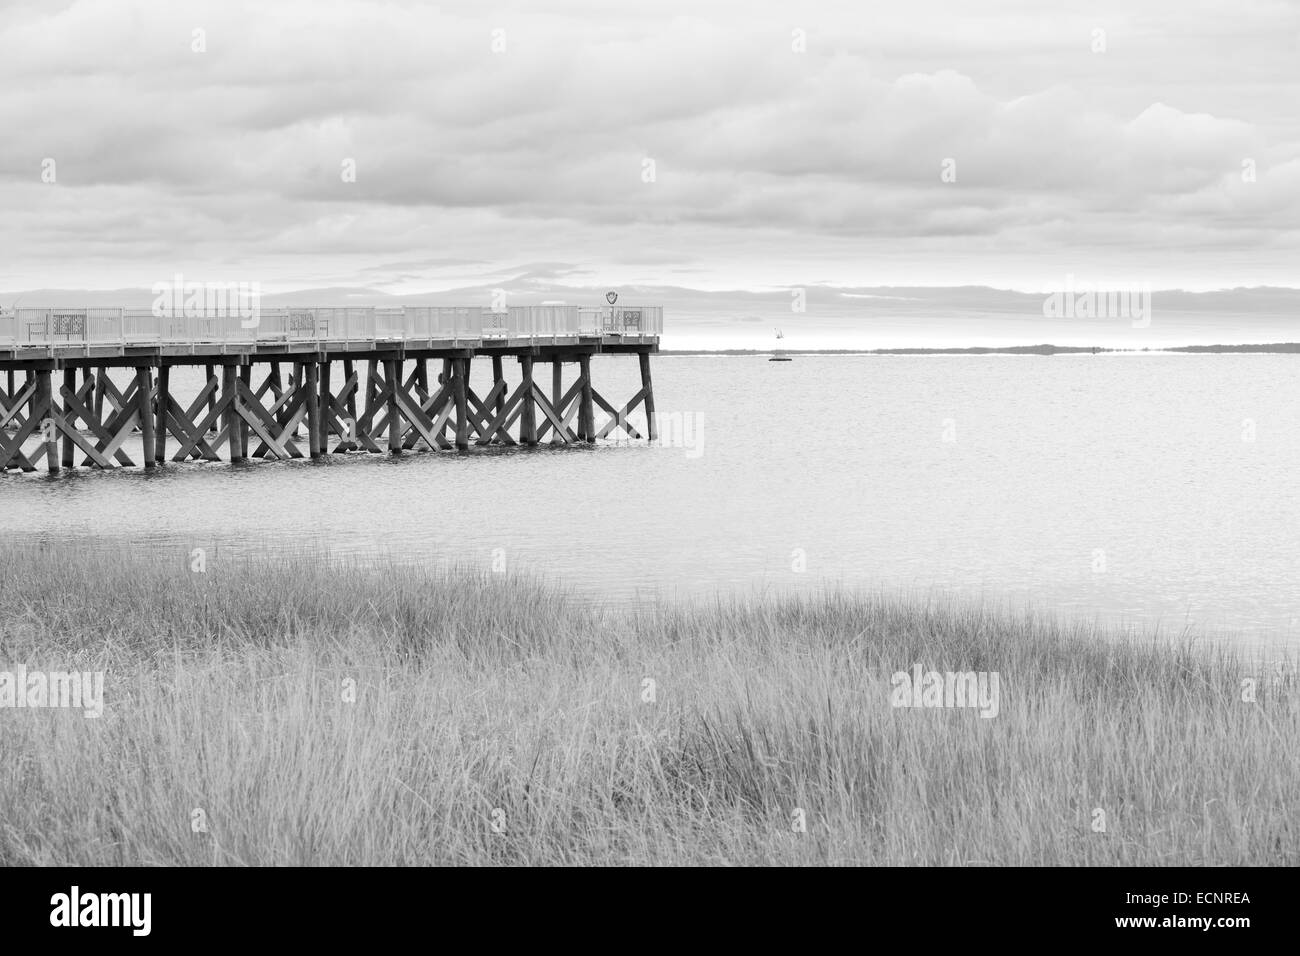 jetty on edge of harbor on overcast day, black and white. - Stock Image